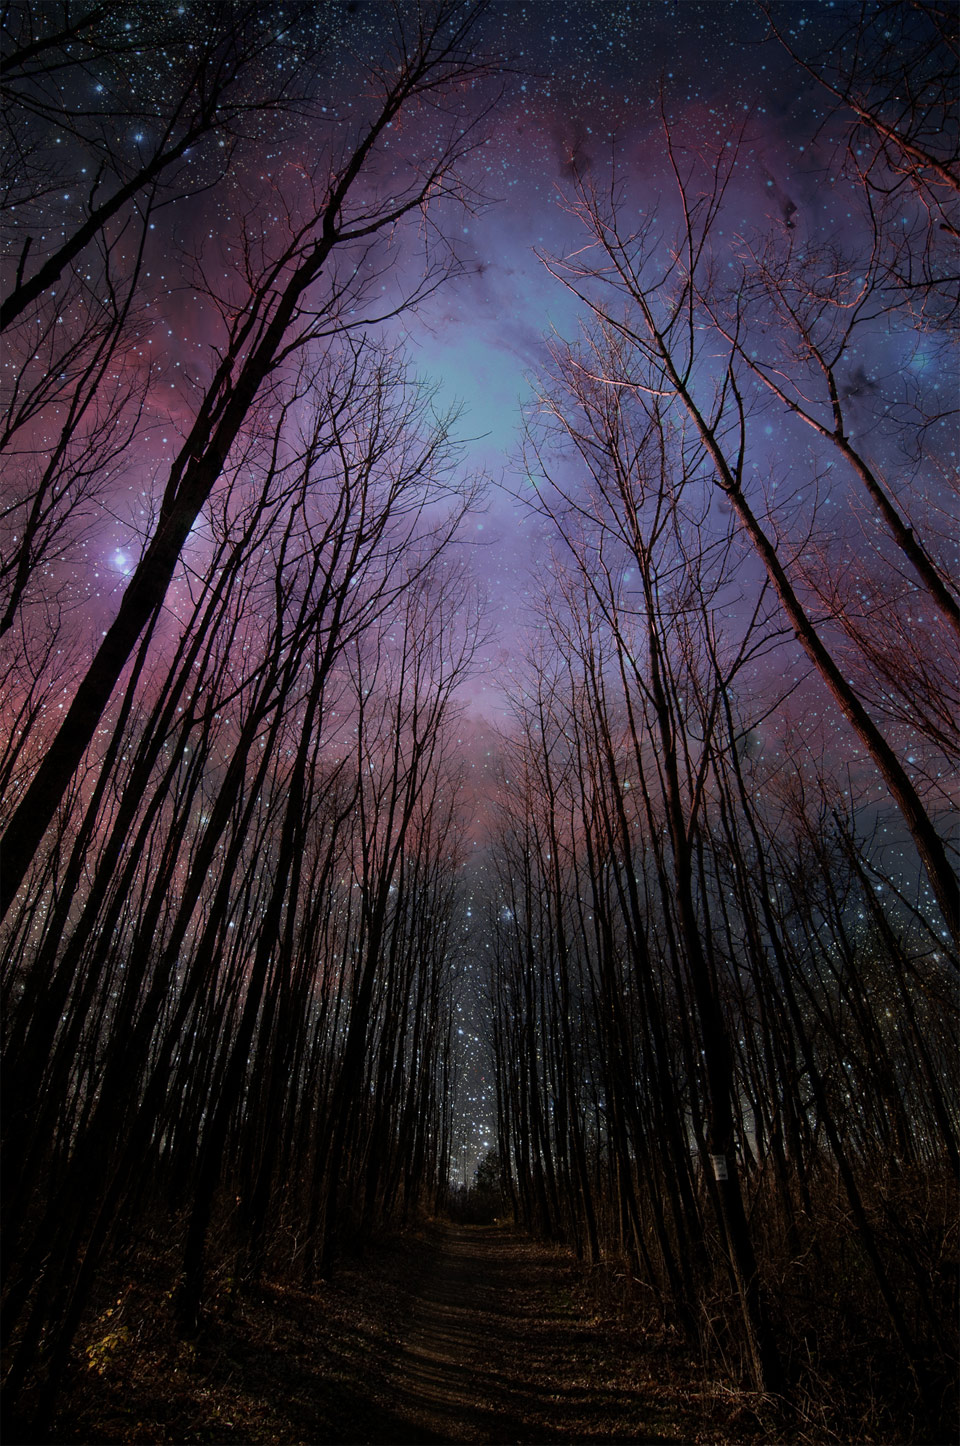 Amazing Night Sky Scenery By Marty Desilets